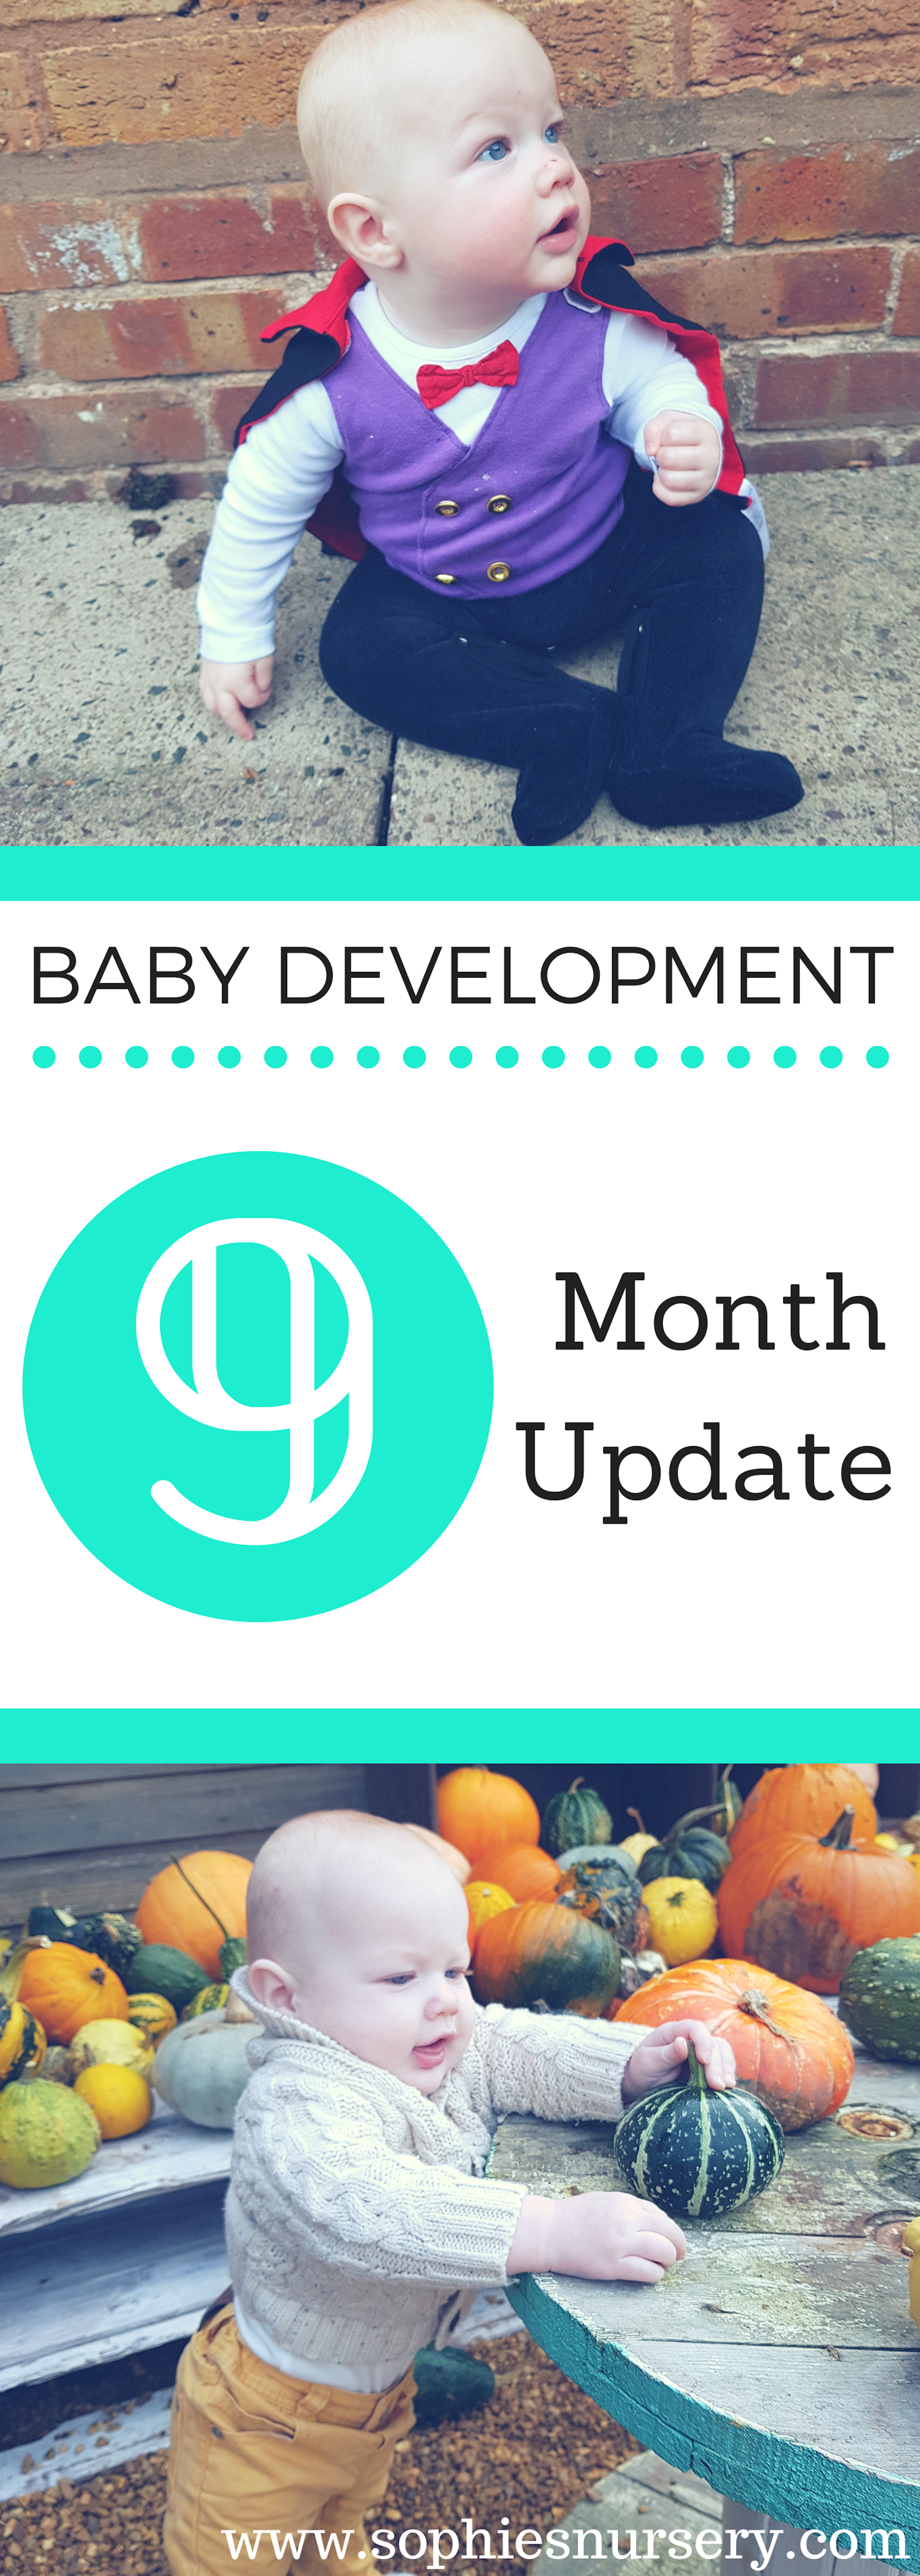 See what Charlie is up to at 9 months with our #babydevelopment at 9-month blog post! Physical & cognitive leaps abound & personality begins to shine through!  #parenting #9monthsold #babyupdate #kids #baby #development